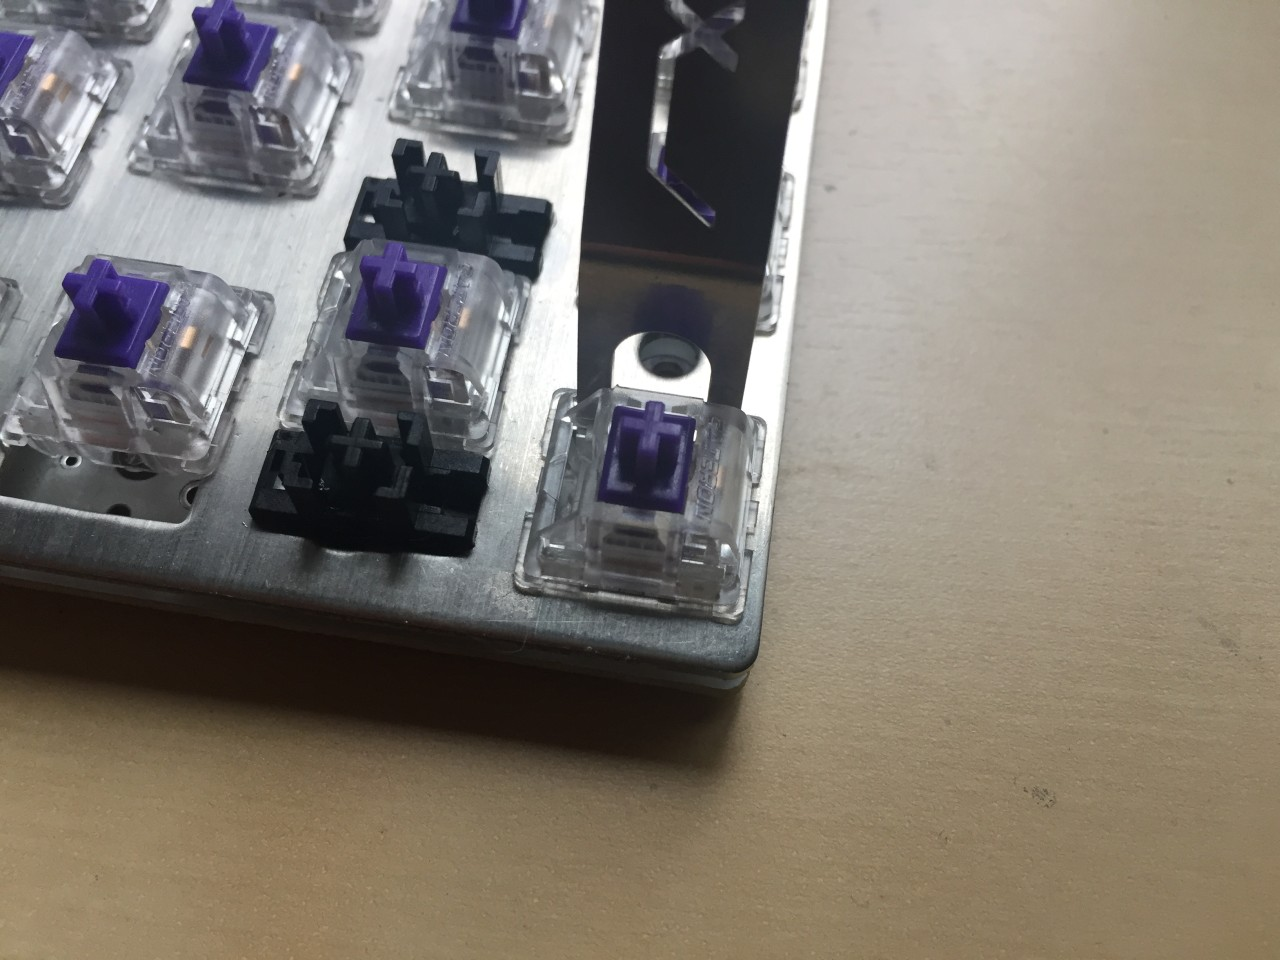 If your switches are already installed and soldered in, you may not be able to open them